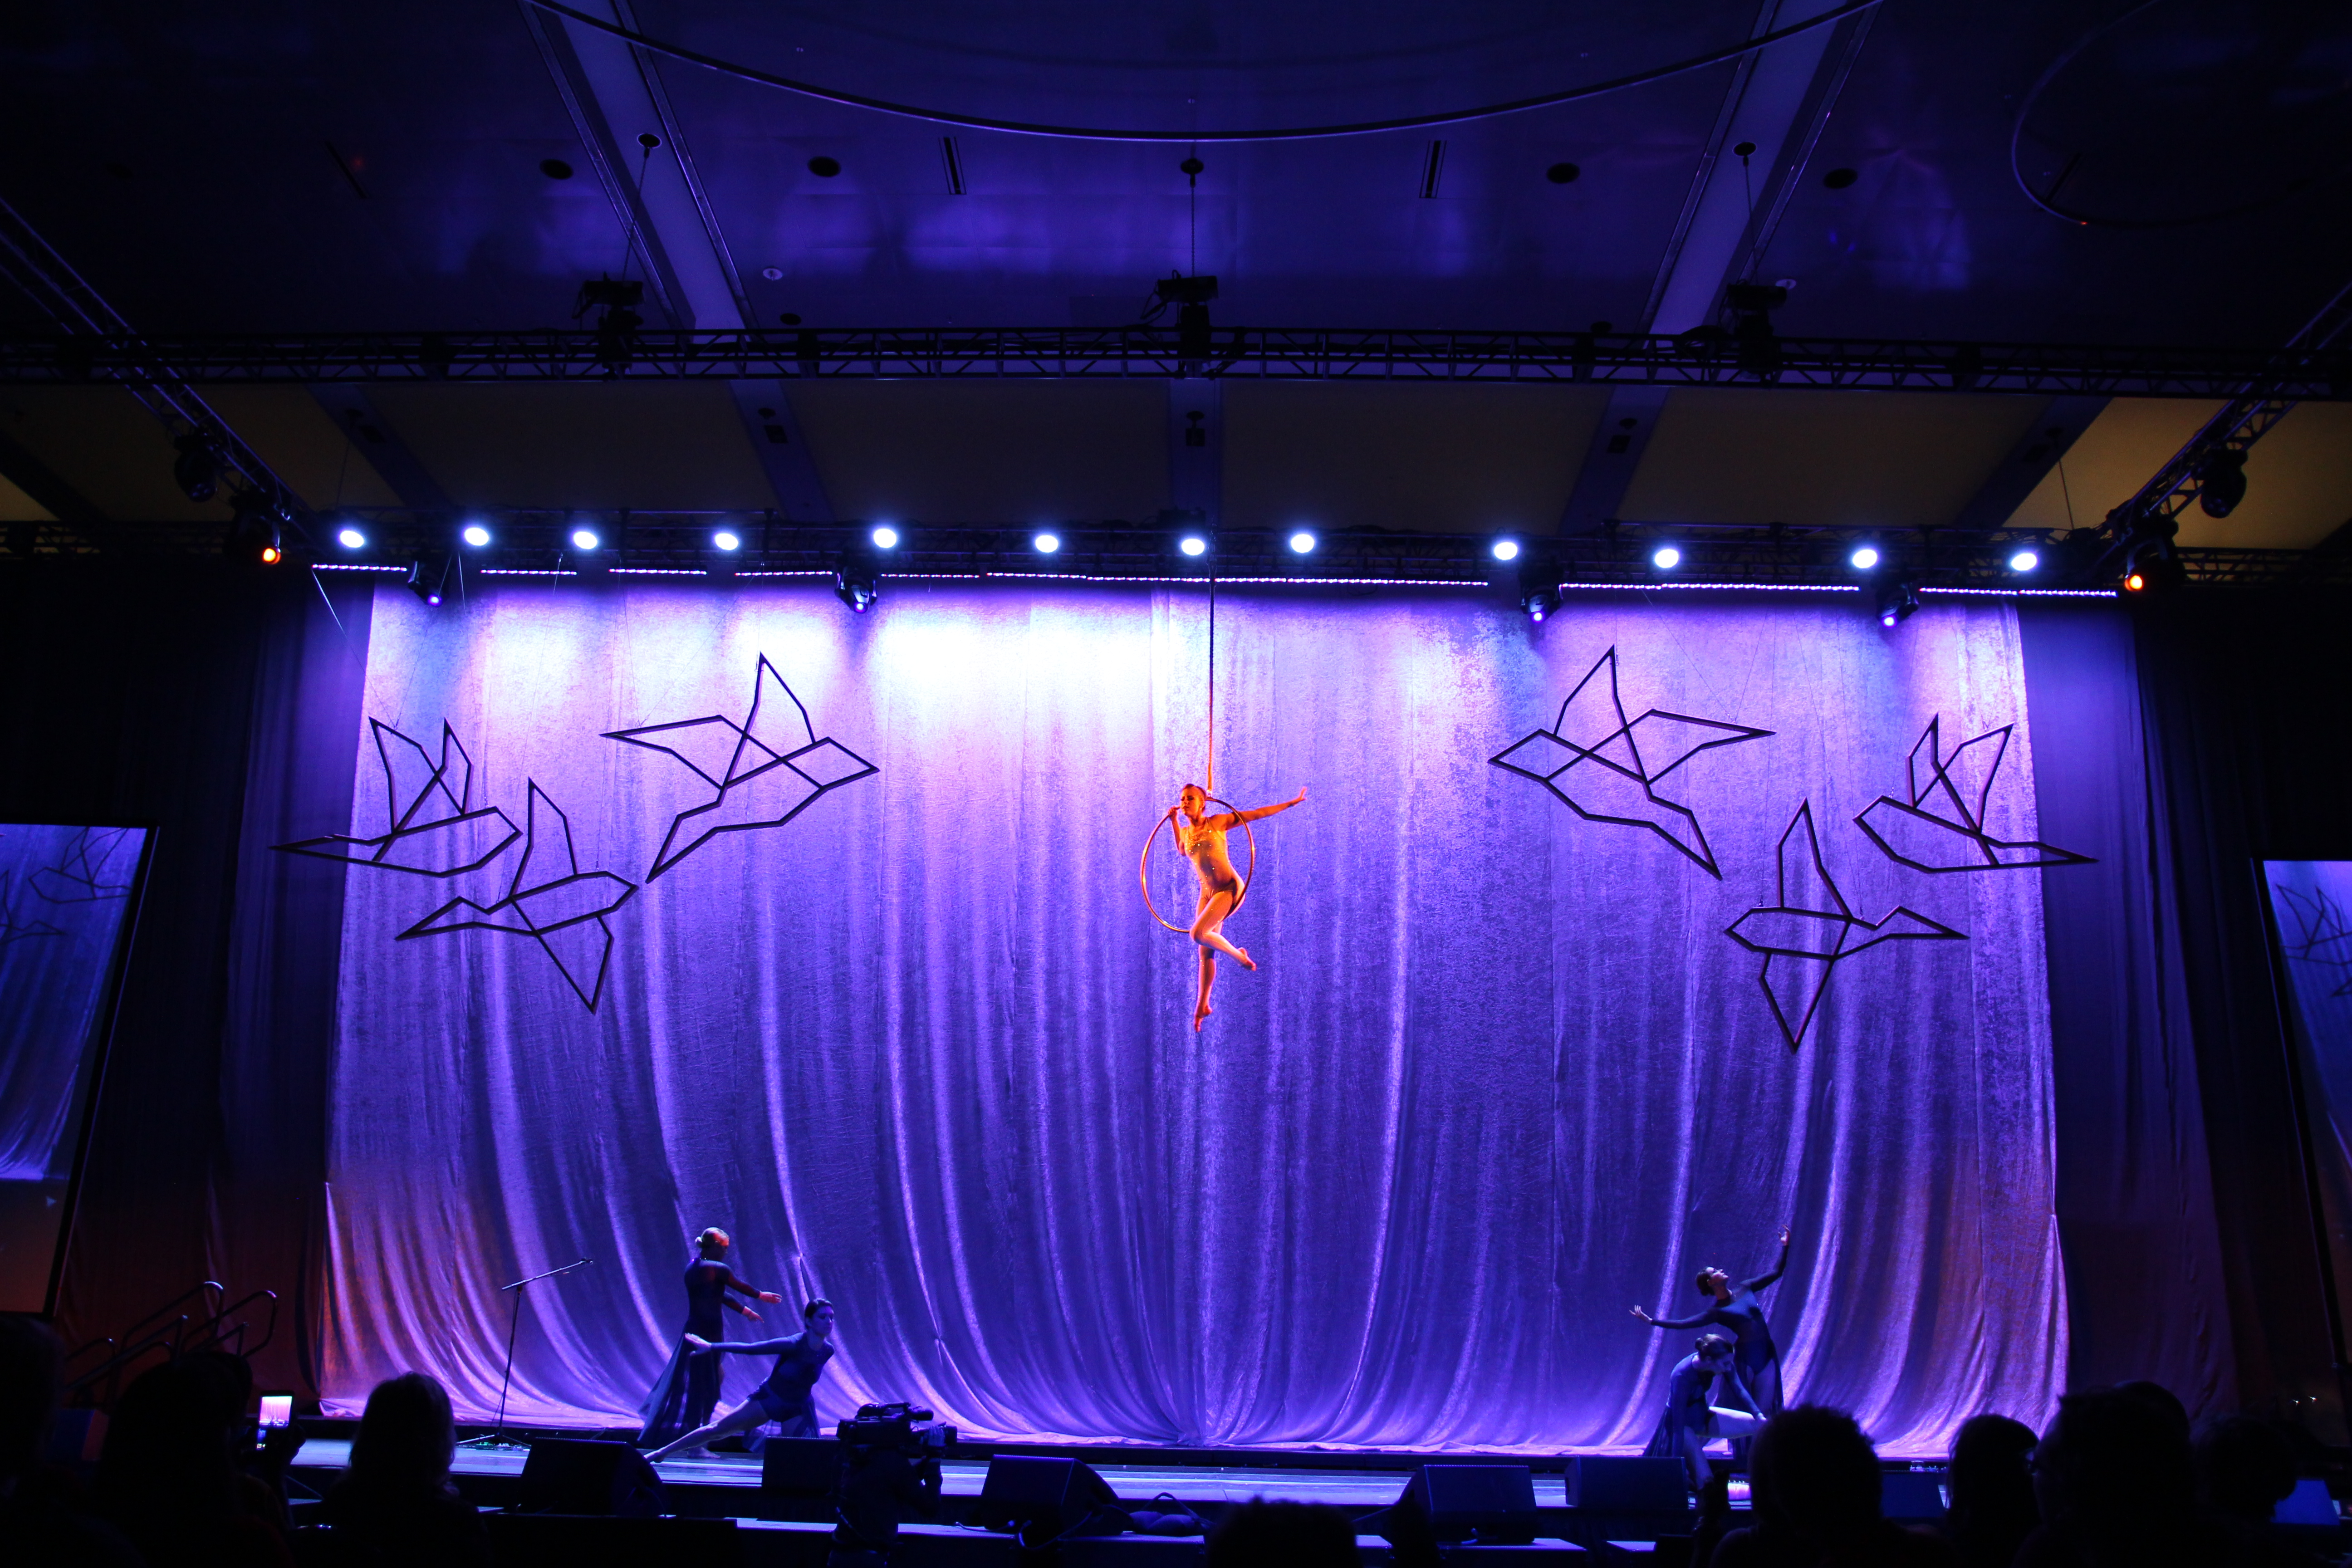 Illusions Unlimited Kansas City Event Based Scenic Design